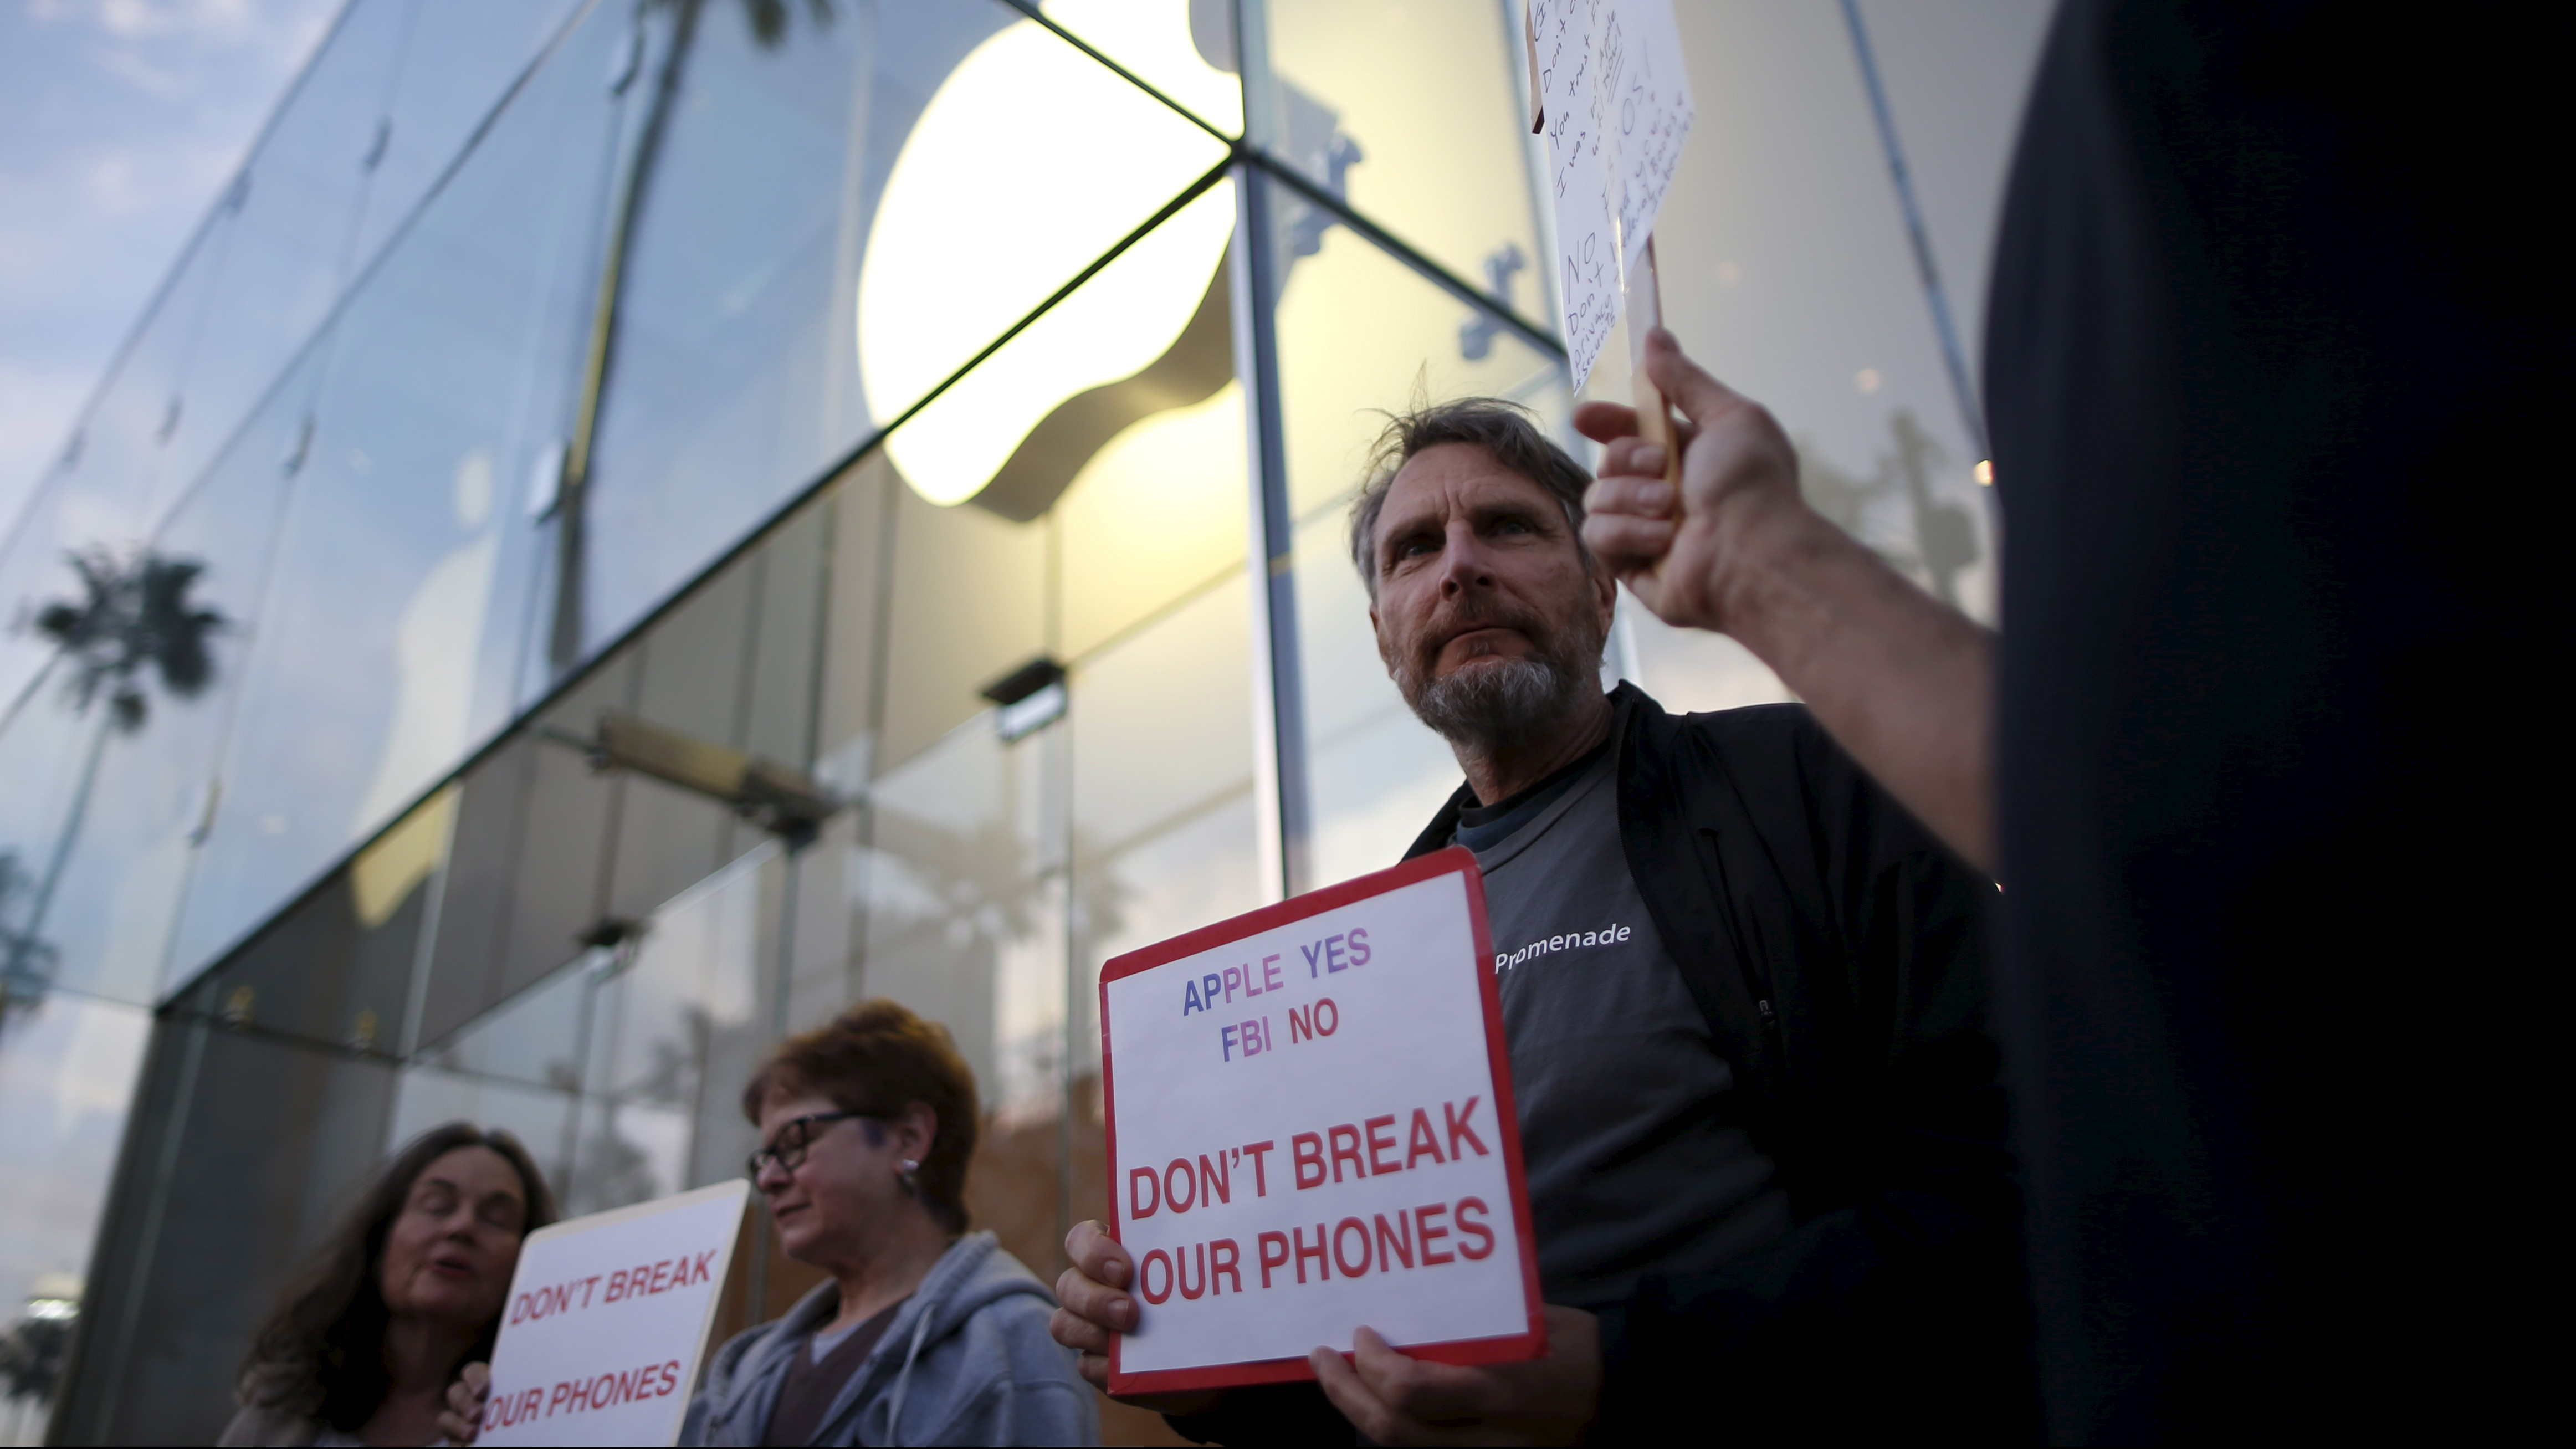 People gather at a small rally in support of Apple's refusal to help the FBI access the cell phone of a gunman involved in the killings of 14 people in San Bernardino, in Santa Monica